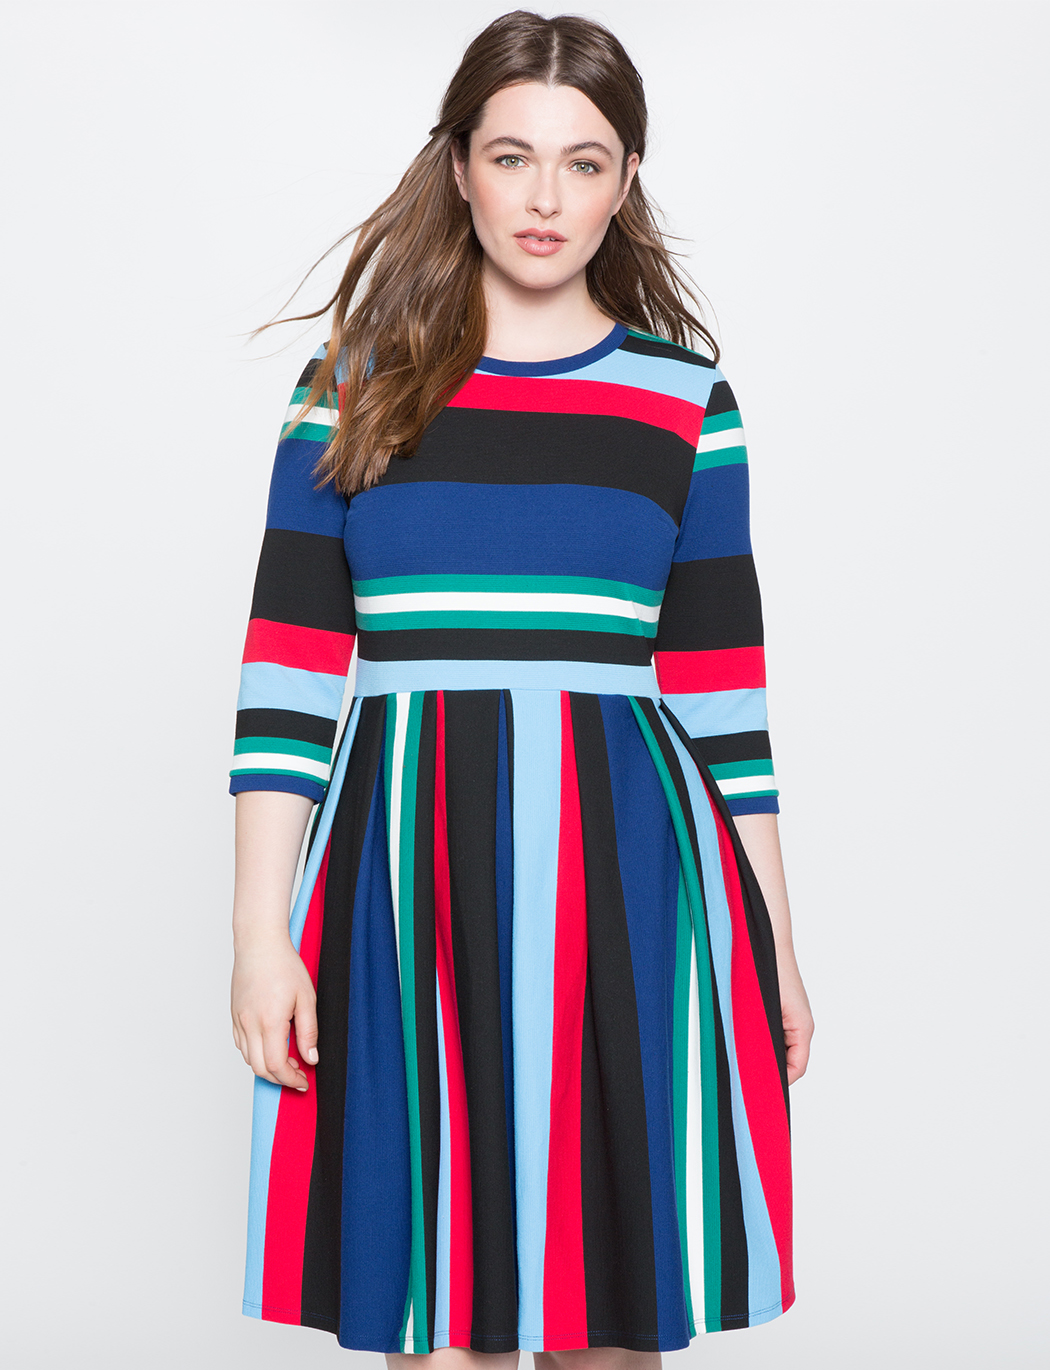 Opposing Striped Knit Dress